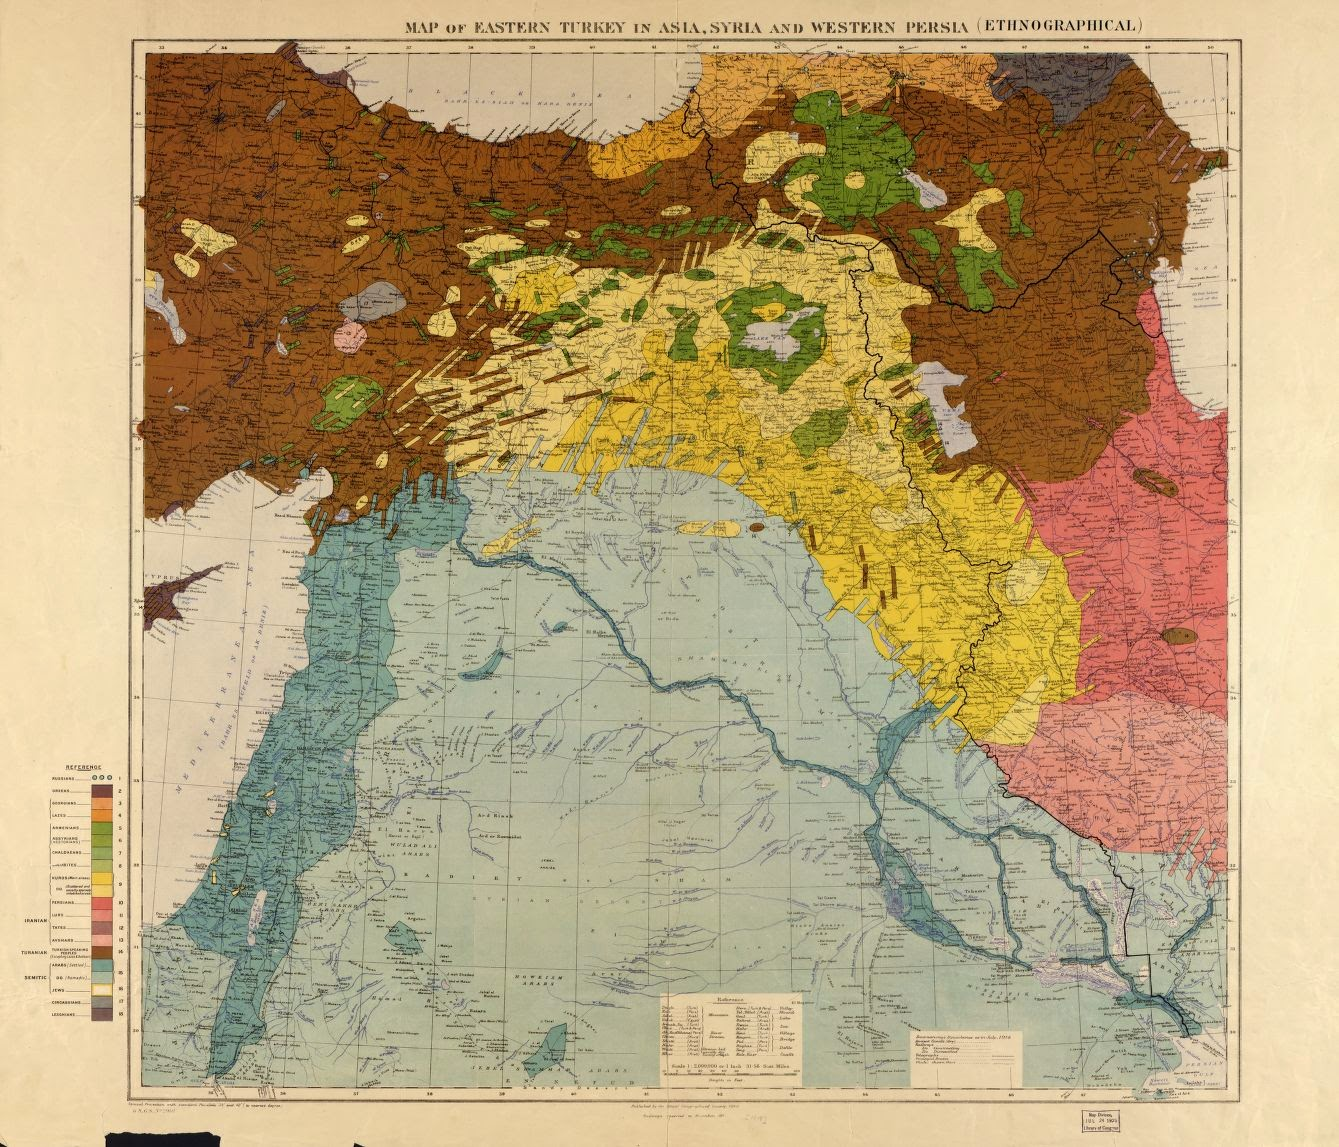 1910 map of eastern turkey in asia syria and western persia ethnographical